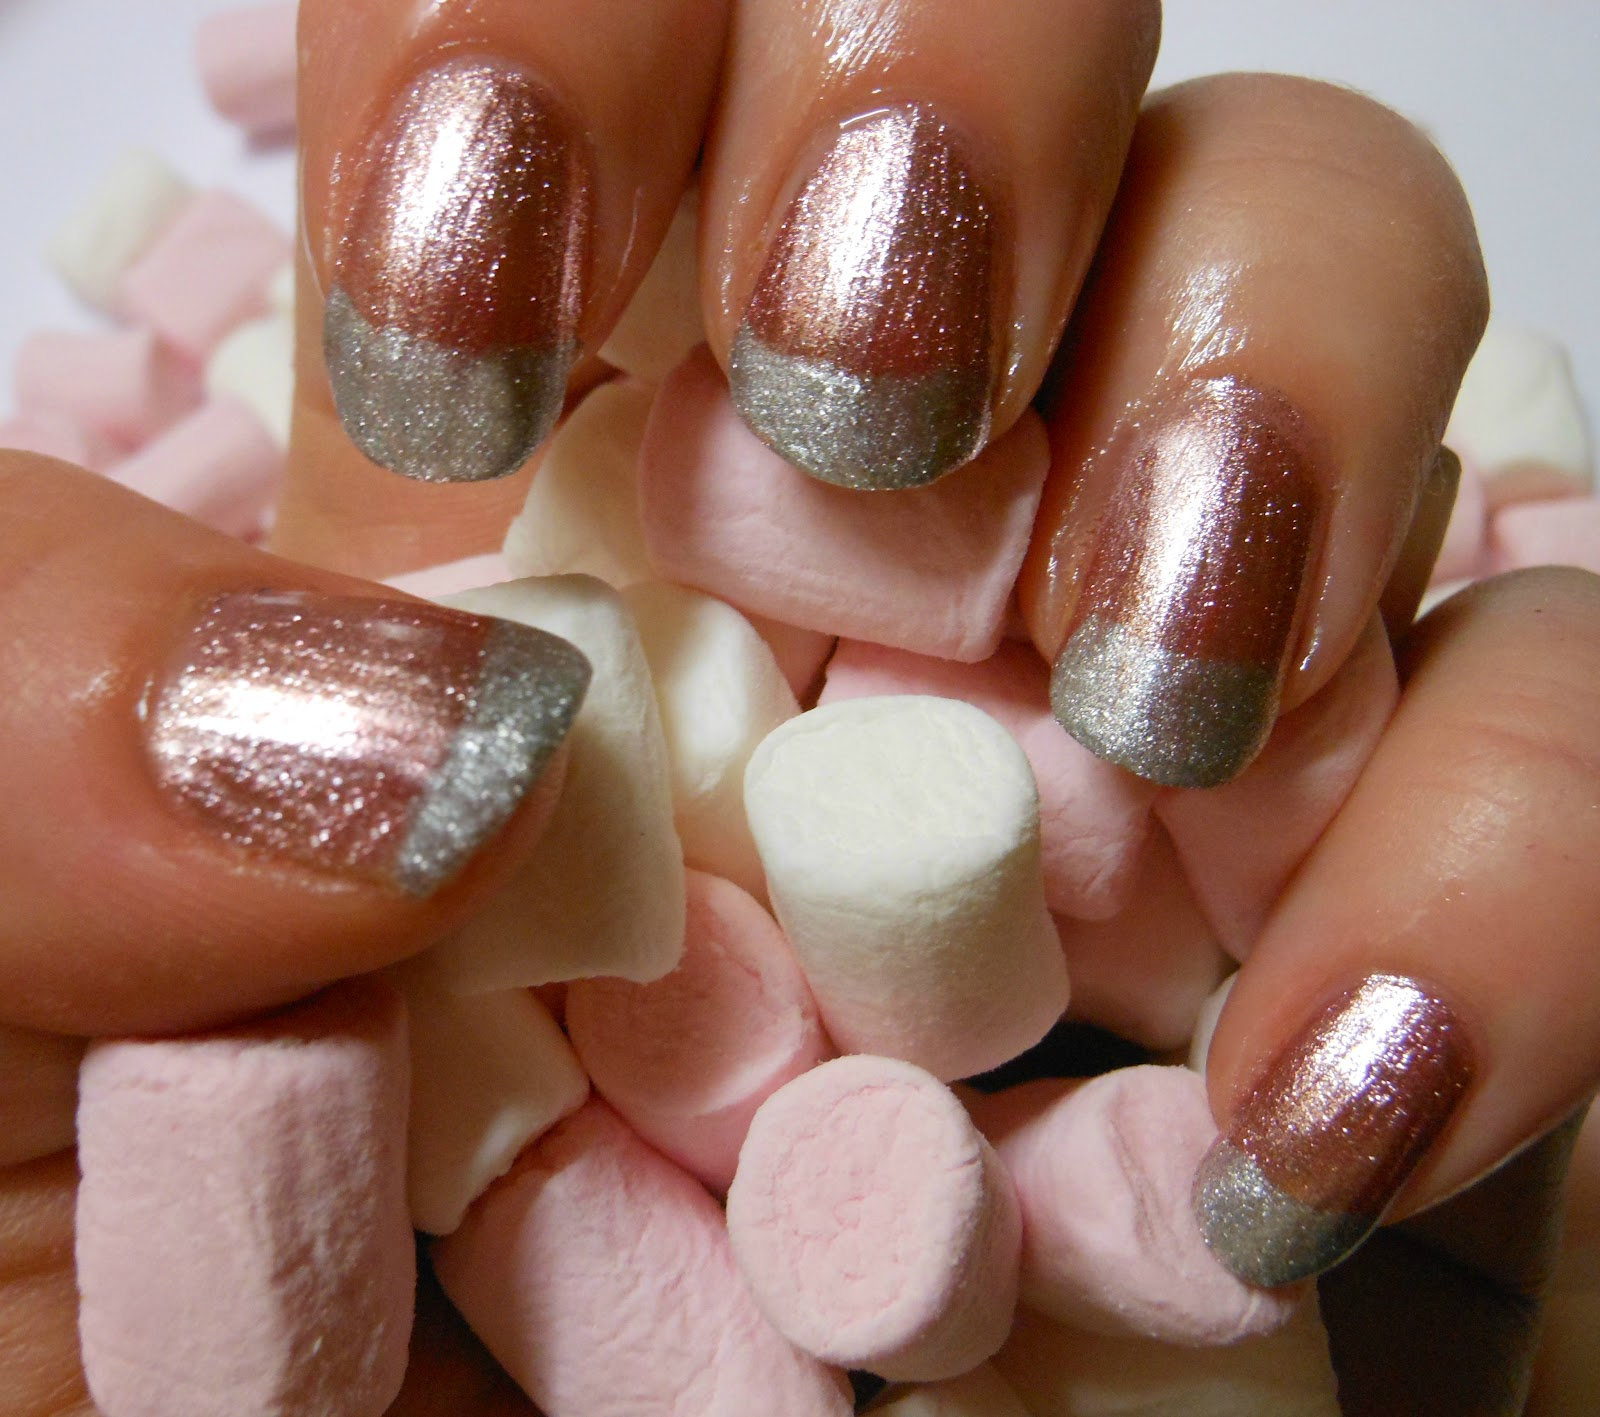 CherrySue, Doin\' the Do: Metallic Marshmallow Nails - Fun Twist on ...